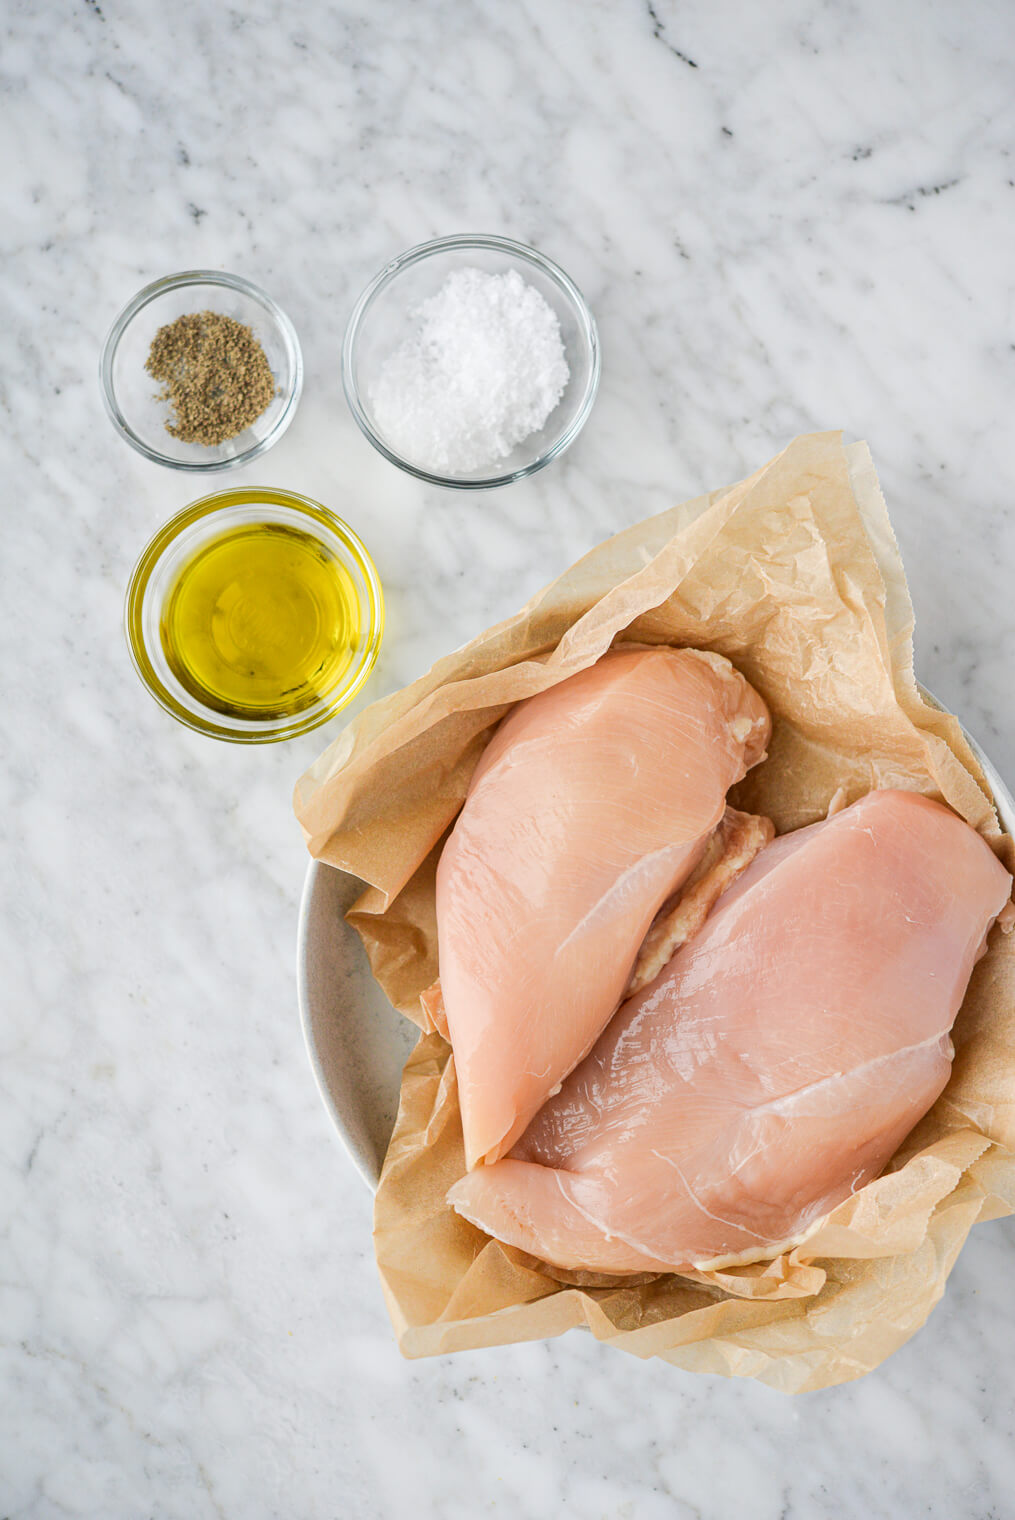 two raw chicken breasts sitting in a parchment paper lined bowl, a small bowl of olive oil, a small bowl of sea salt, and a small bowl of ground pepper sitting on a marble surface